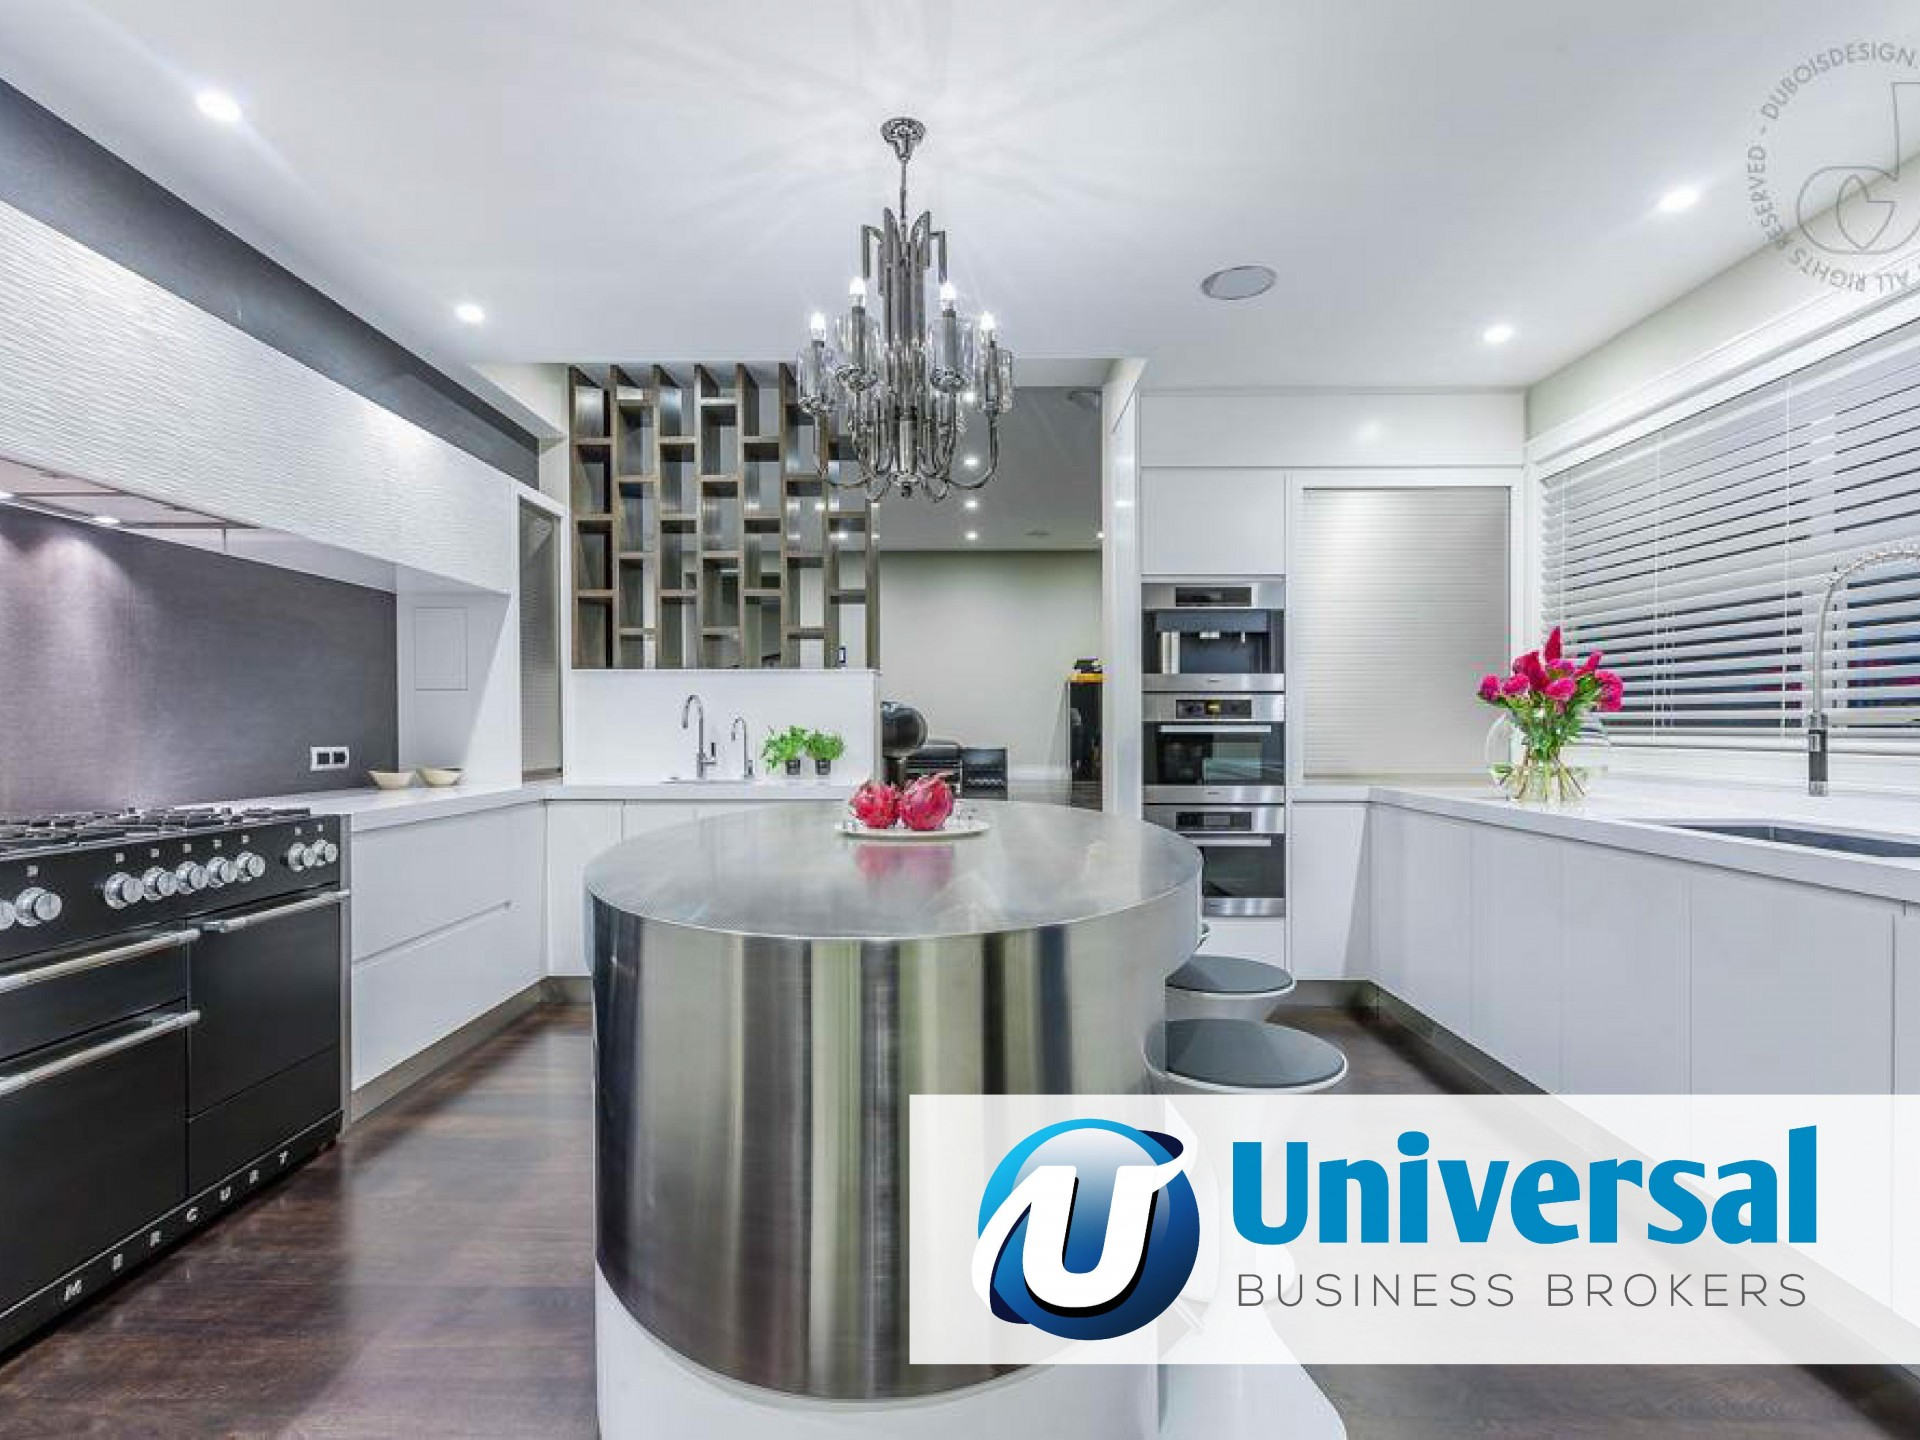 Spray Painting Polyurethane Finishes Business for sale in Sydney South